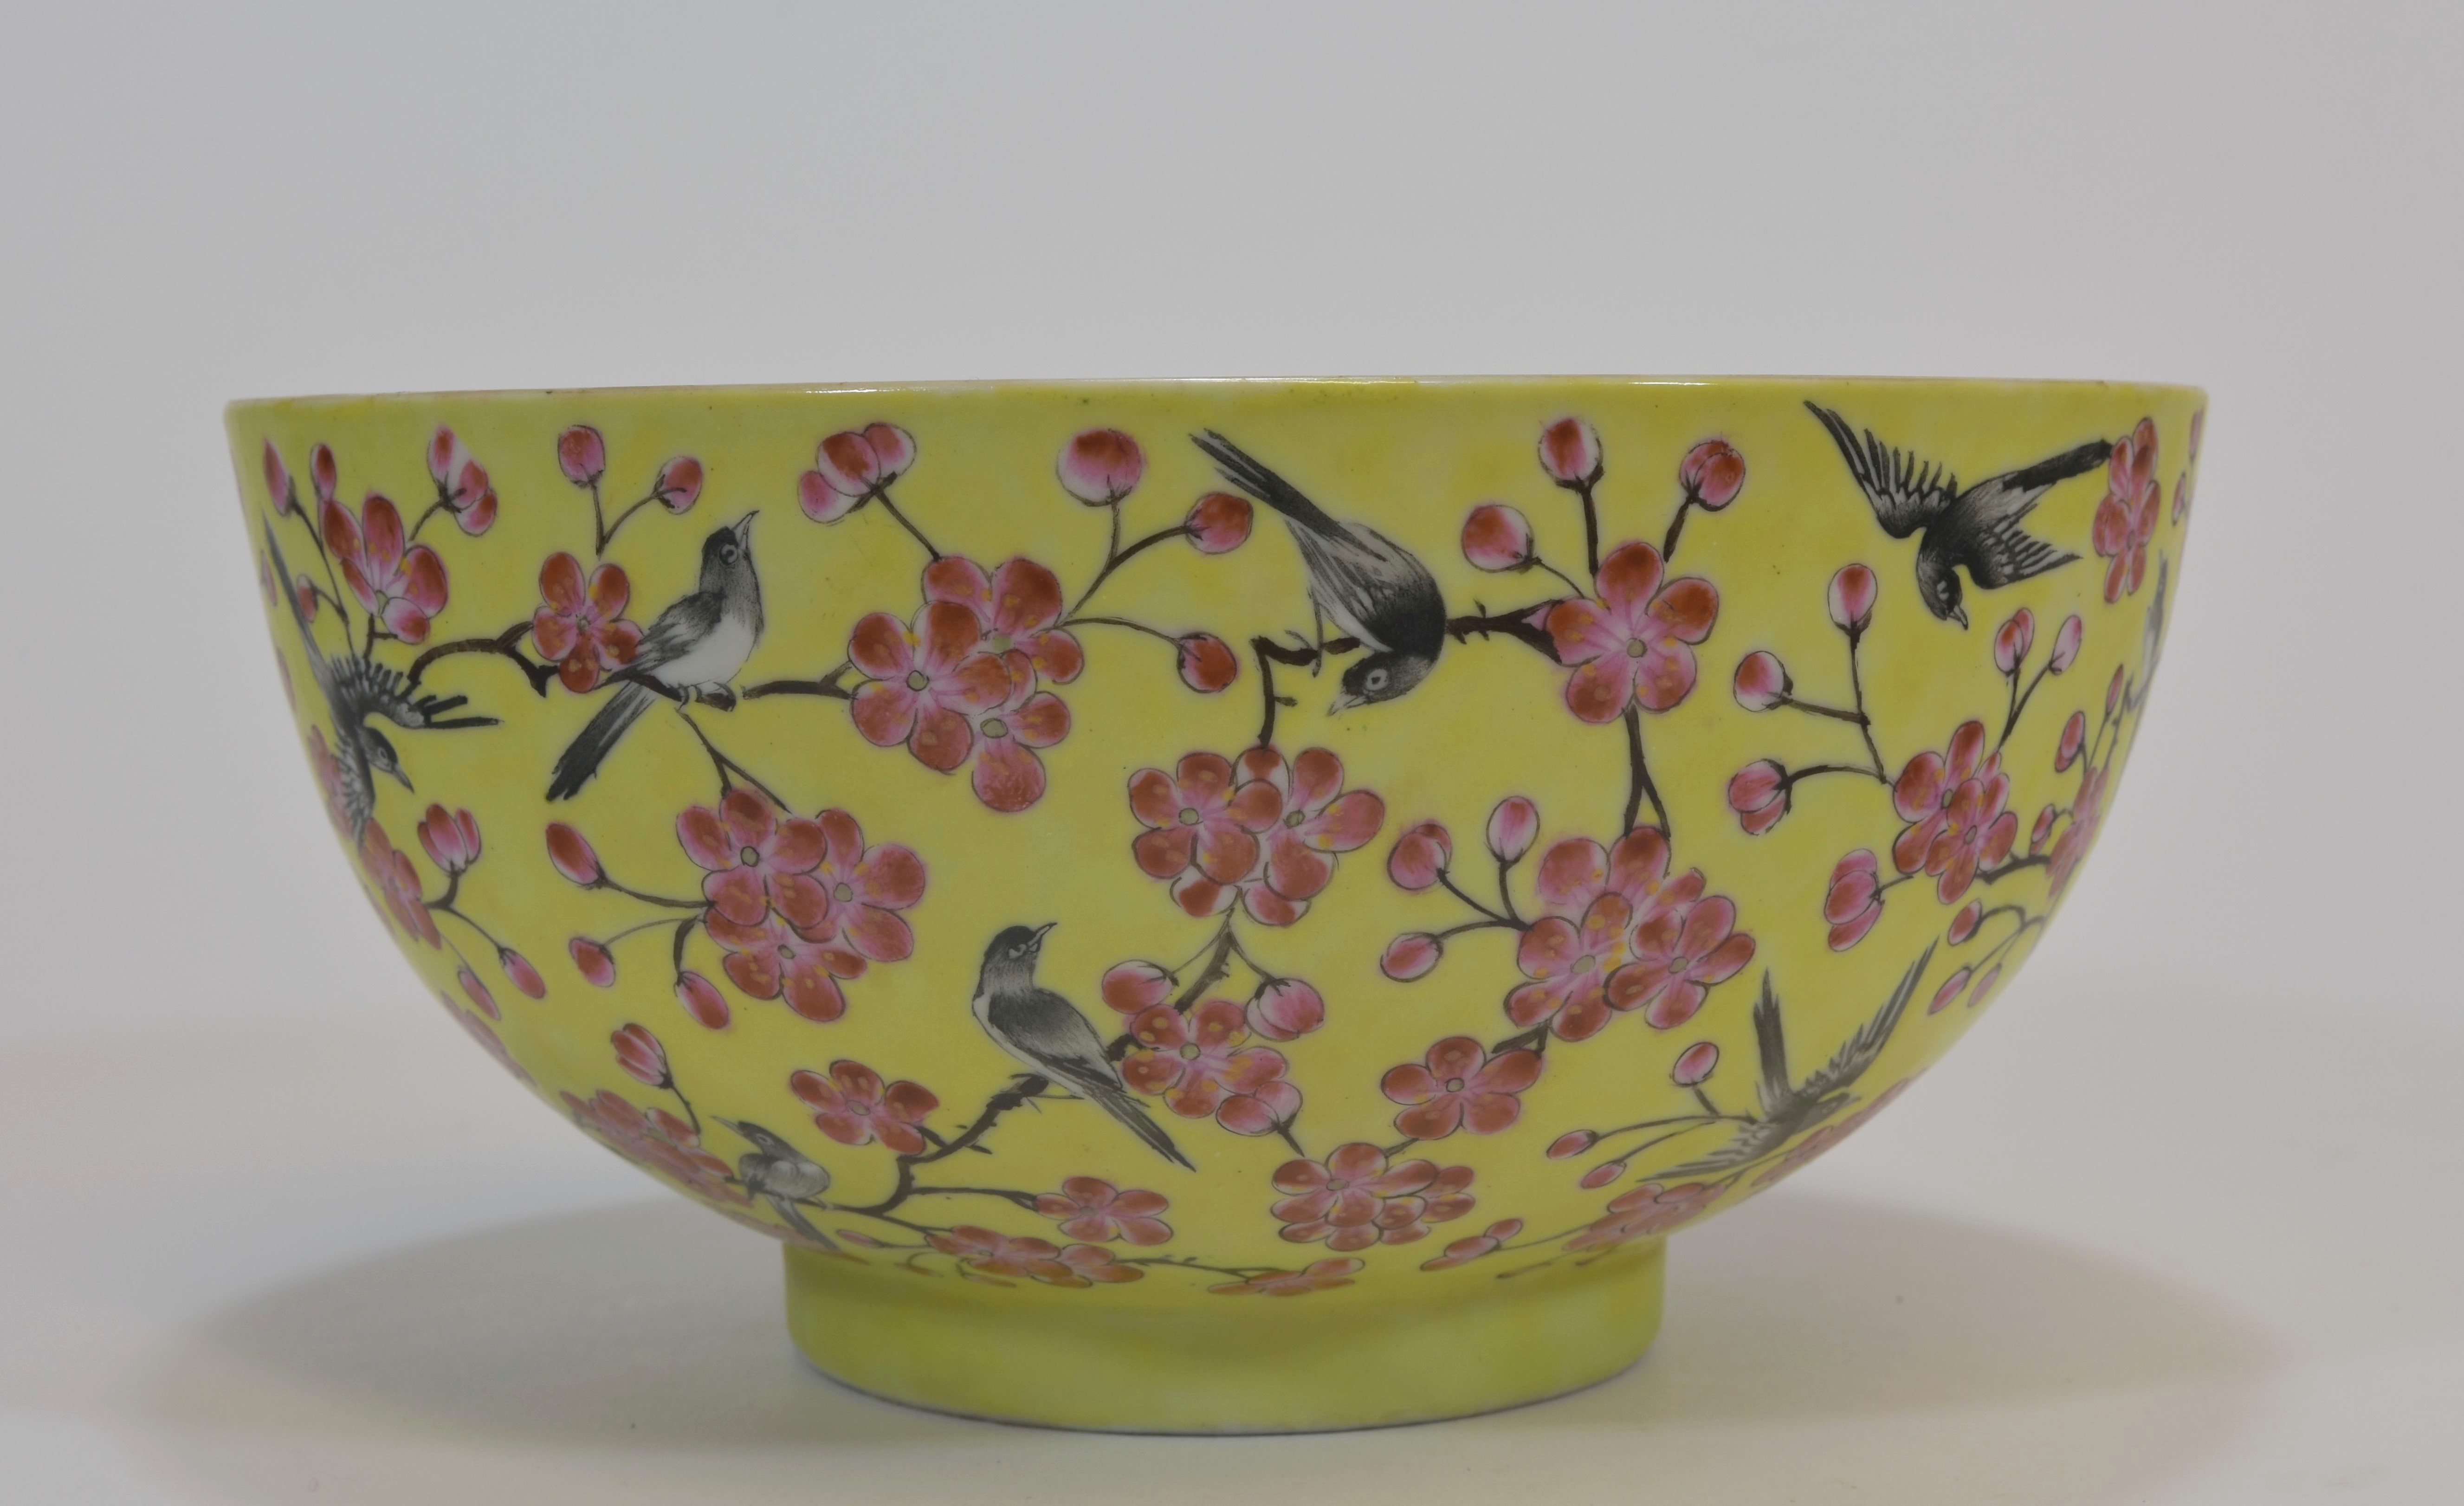 Lot 27 - A 19th century yellow glazed bowl with twenty-two magpies. Mark and period of Tongzhi 18cm清 同治時期